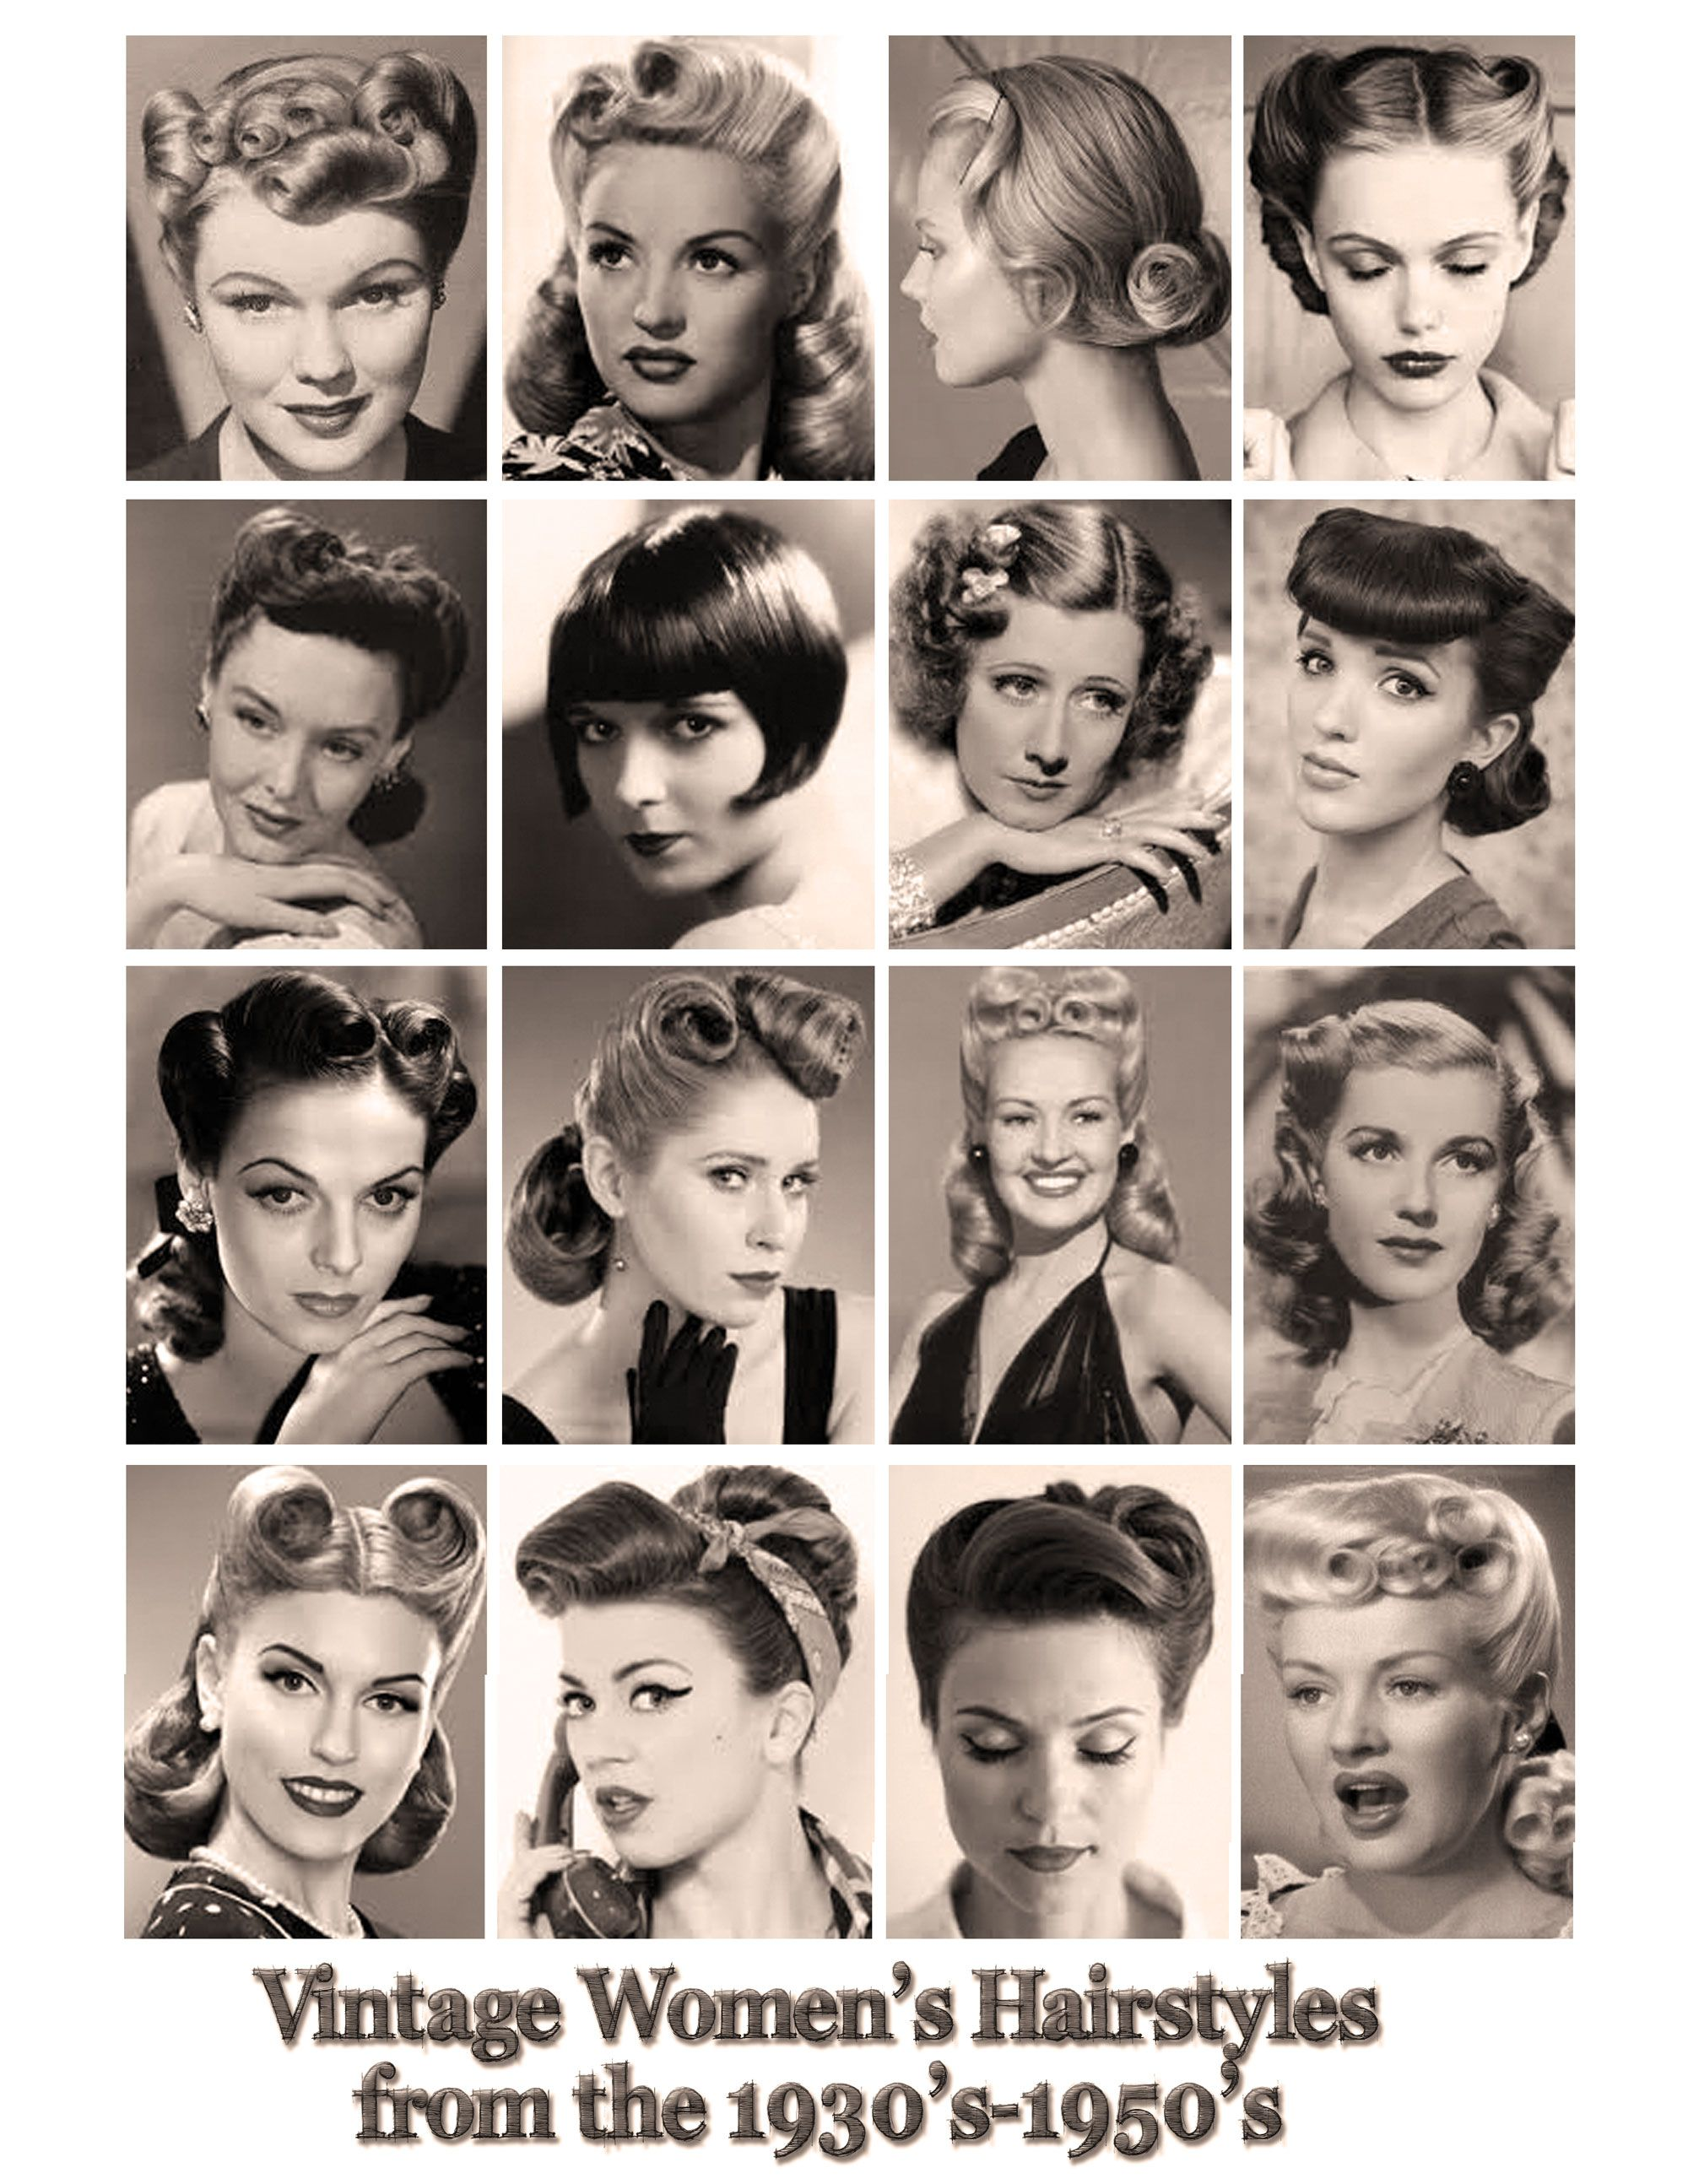 A Good Sampling Of Hair Styles And That Would Make A Great Look For Any Lady Young Or Old In Our Vintage Phot Vintage Hairstyles Hair Styles Retro Hairstyles